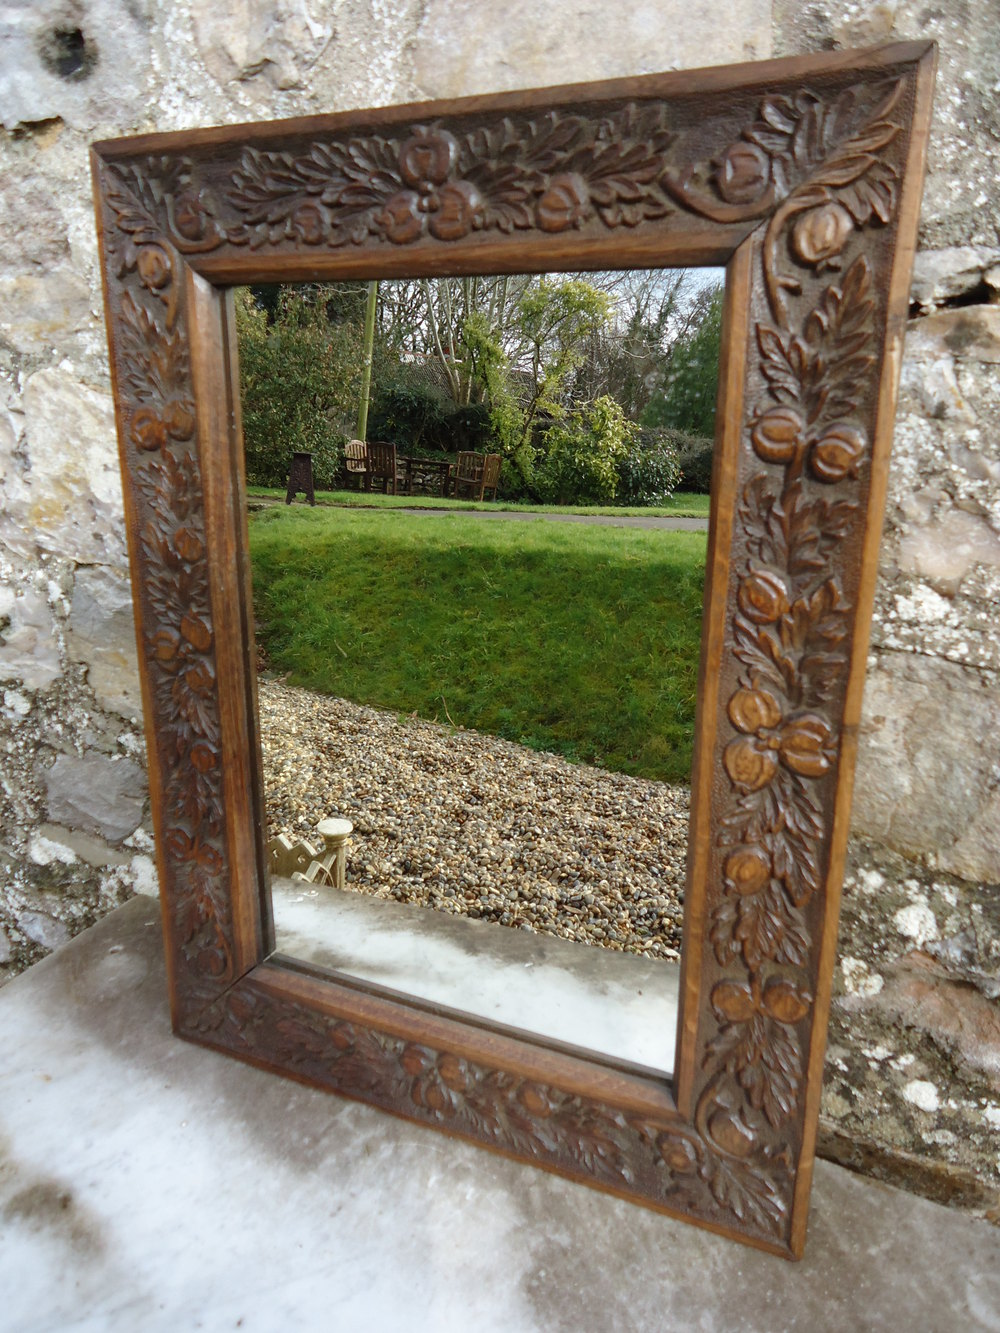 Arts and crafts mirrors - Arts Crafts Carved Oak Mirror With Seed Pods